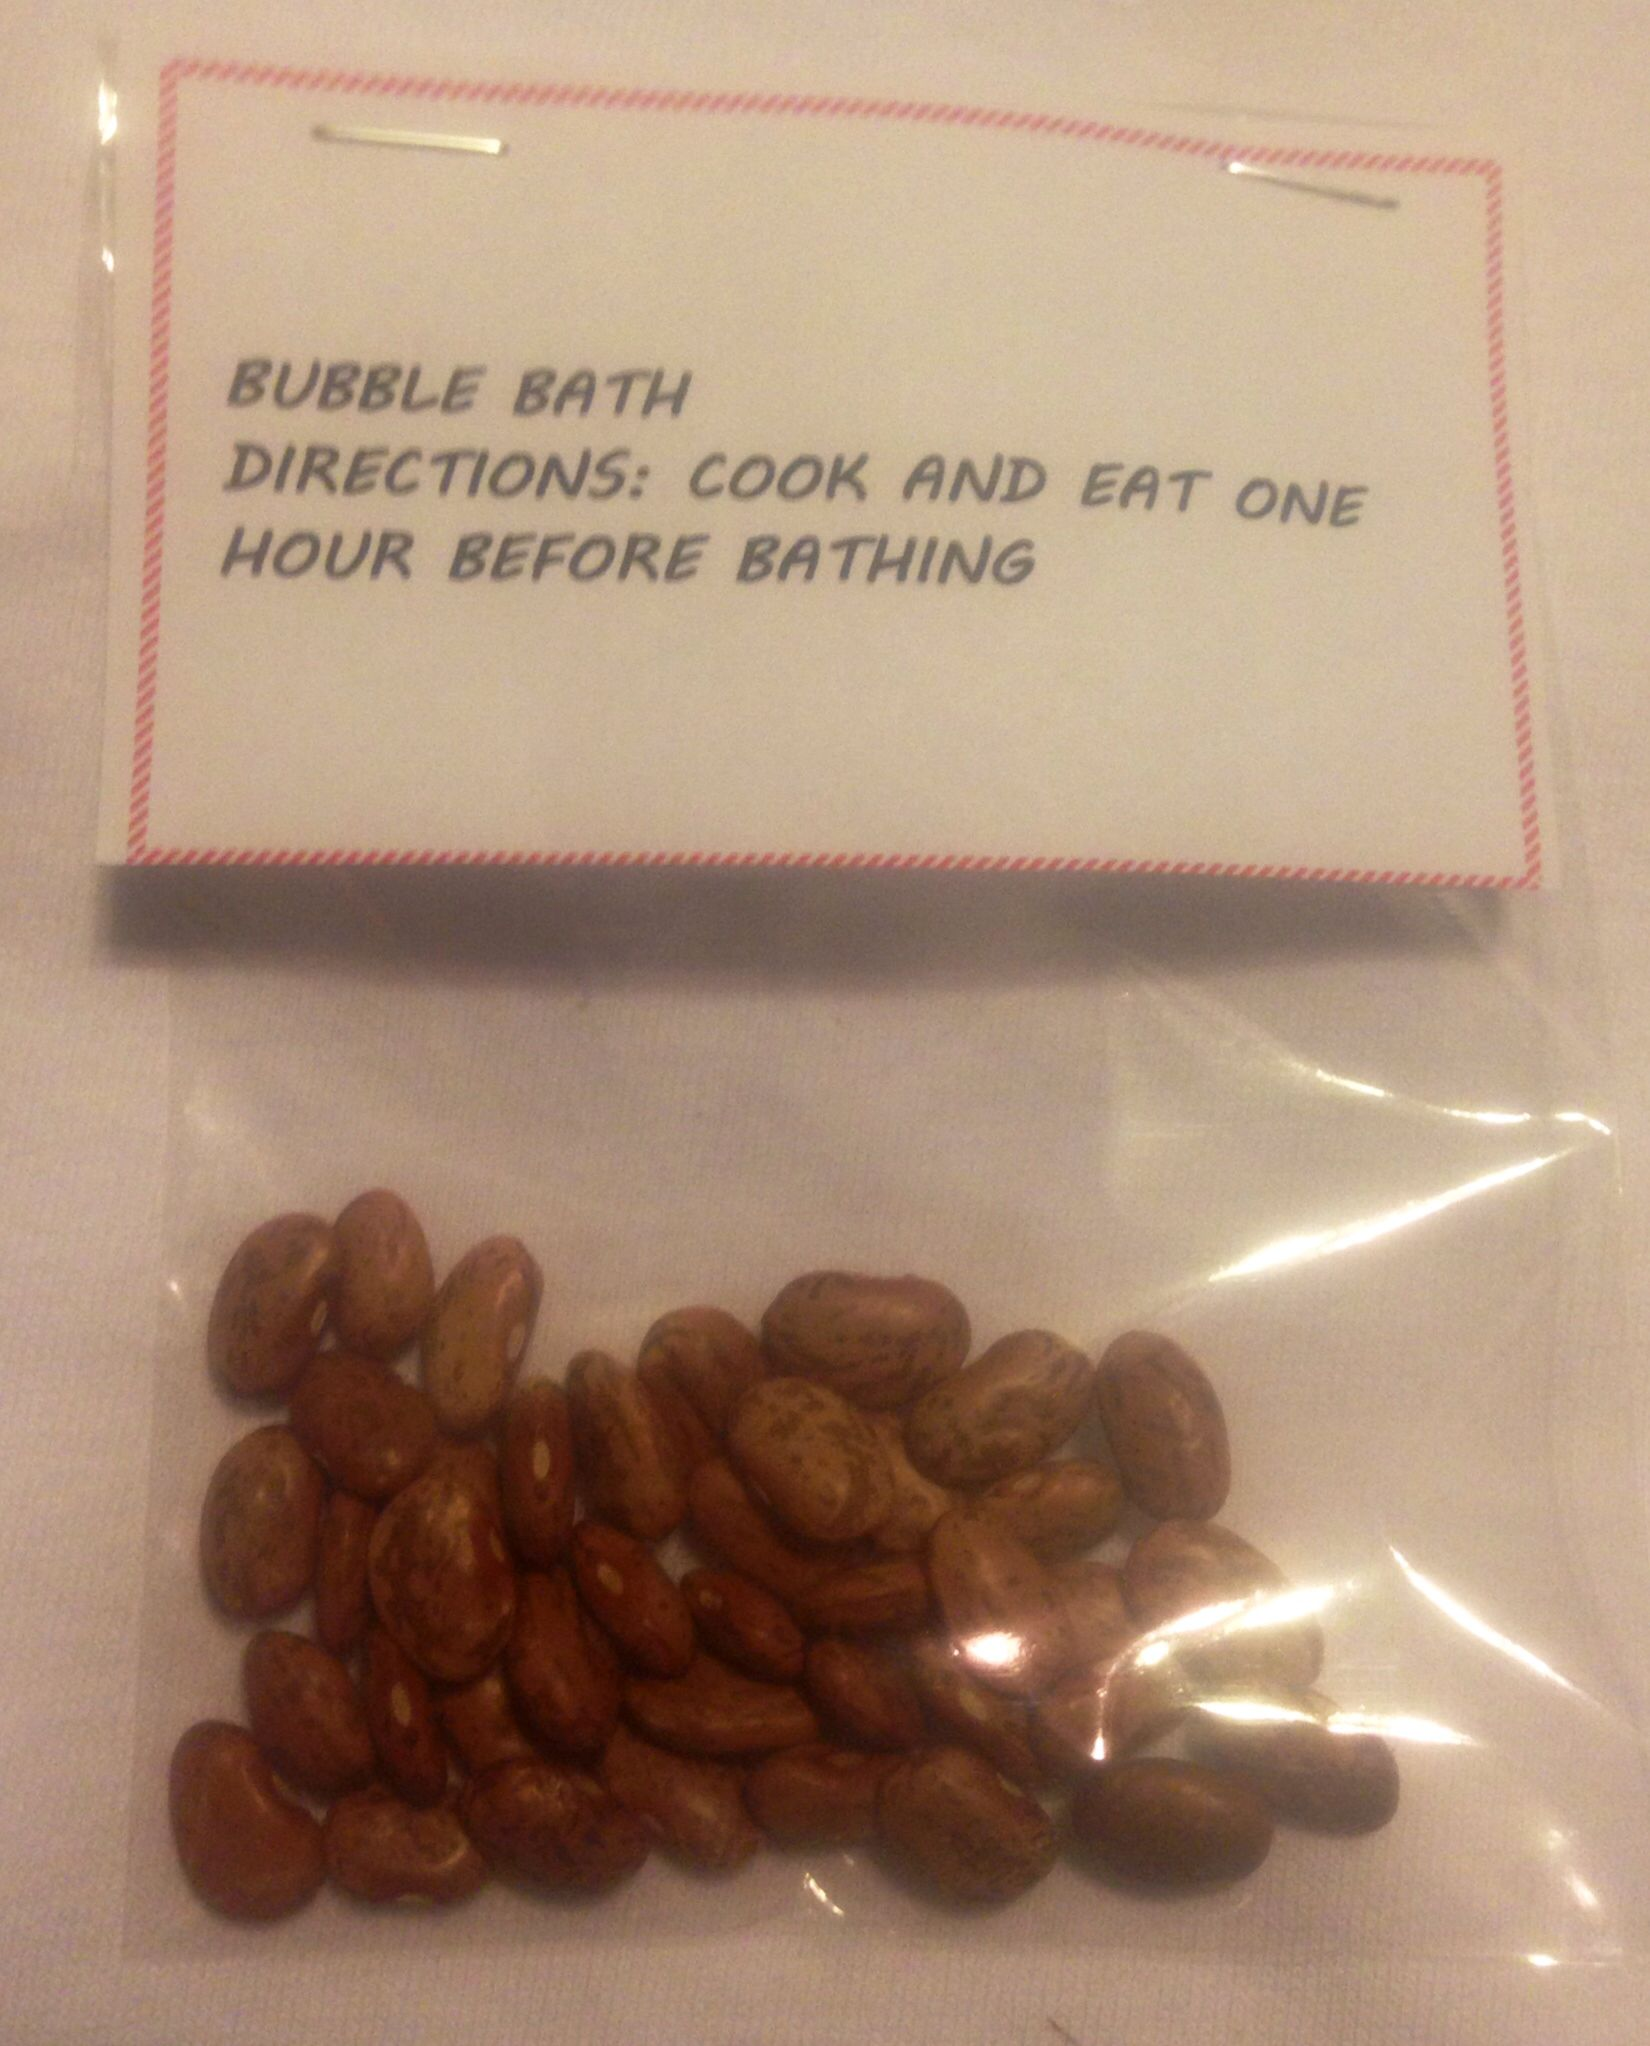 Bubble bath. Put dried beans in a bag for a funny Christmas gag gift ...